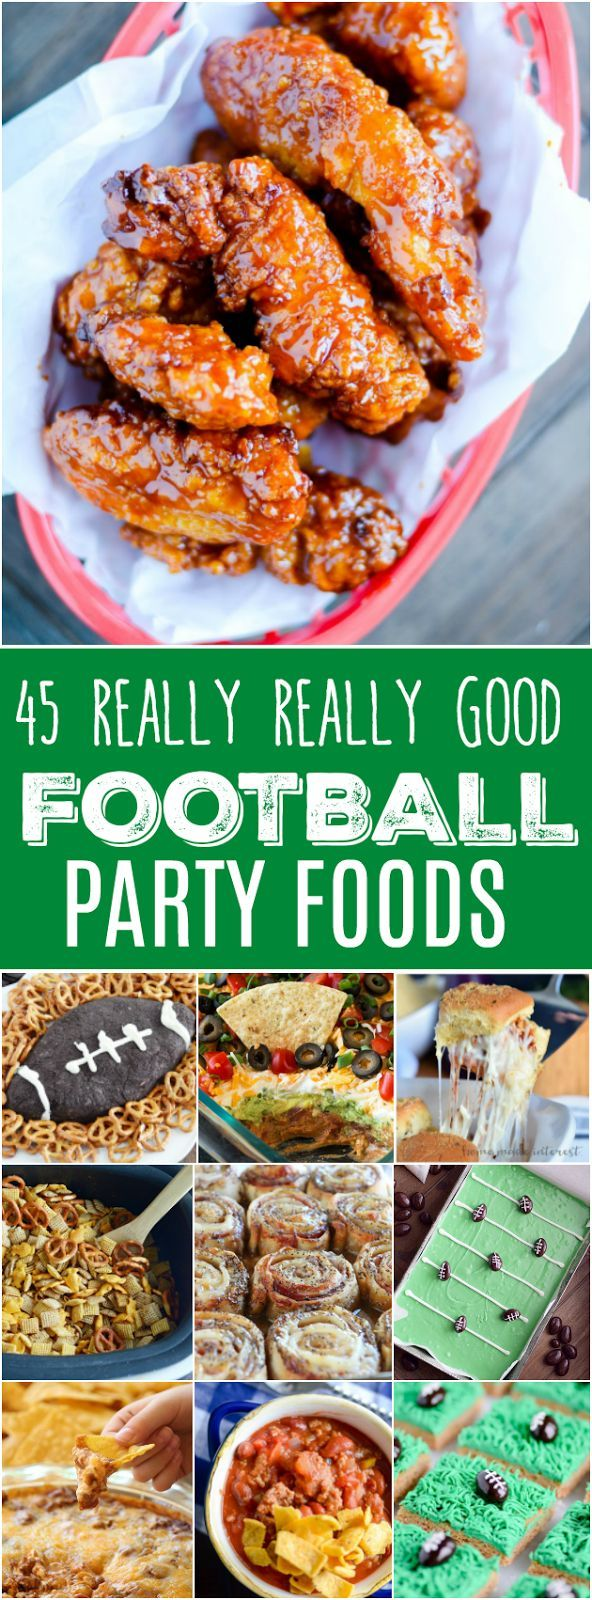 45 Really Really Good Football Party Foods http://www.keatseats.com/2017/09/45-really-really-good-football-party.html?utm_campaign=coschedule&utm_source=pinterest&utm_medium=Something%20Swanky&utm_content=45%20Really%20Really%20Good%20Football%20Party%20Foods